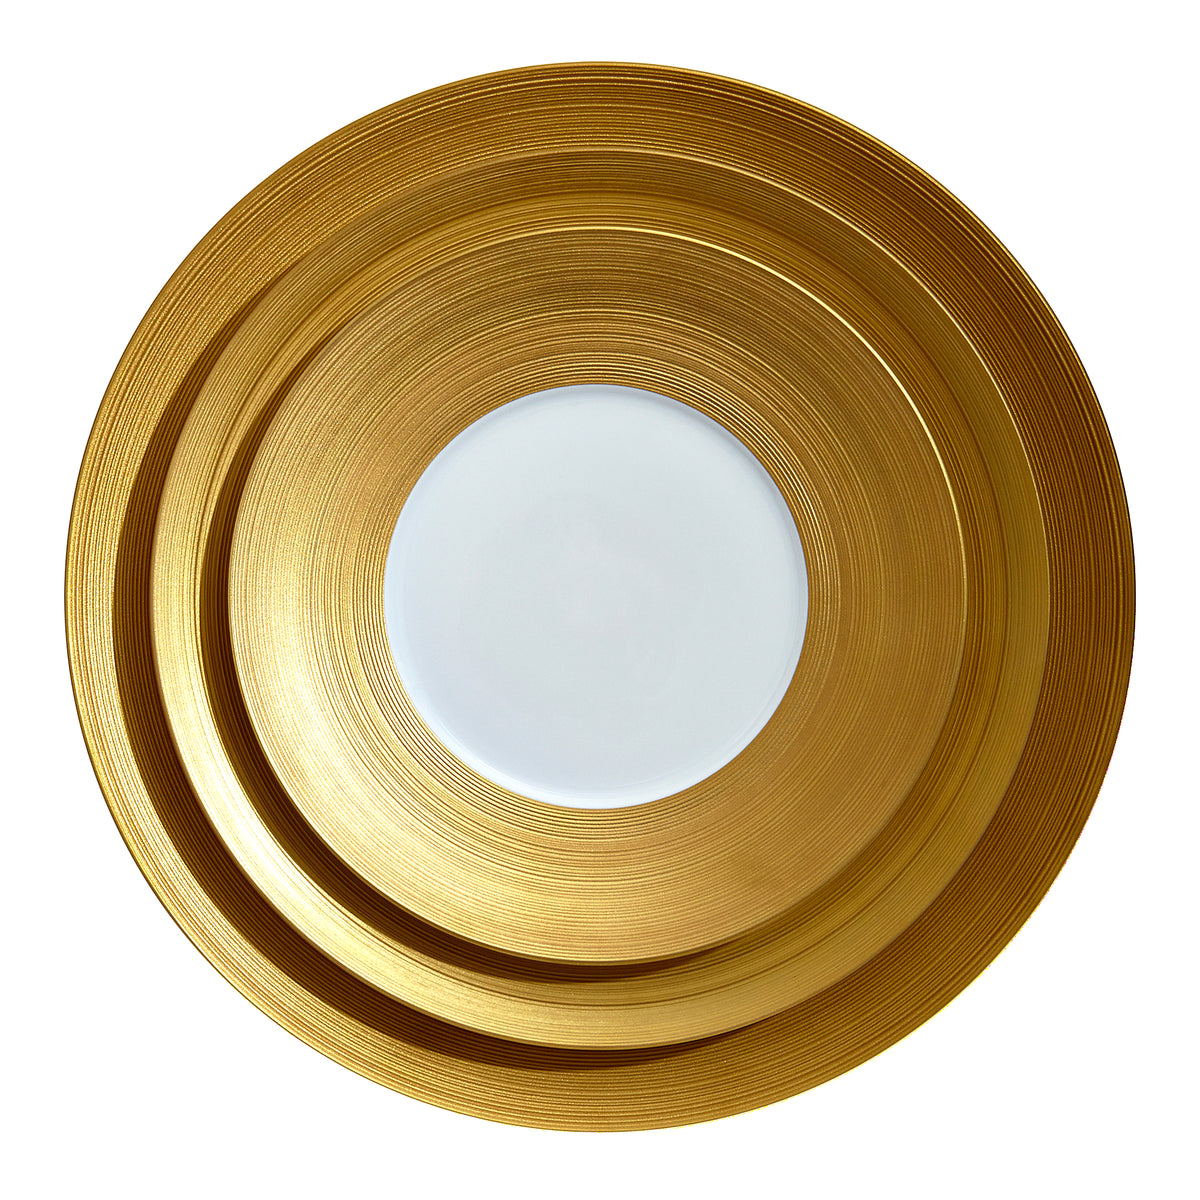 Hemisphere Gold Porcelain Charger Plate